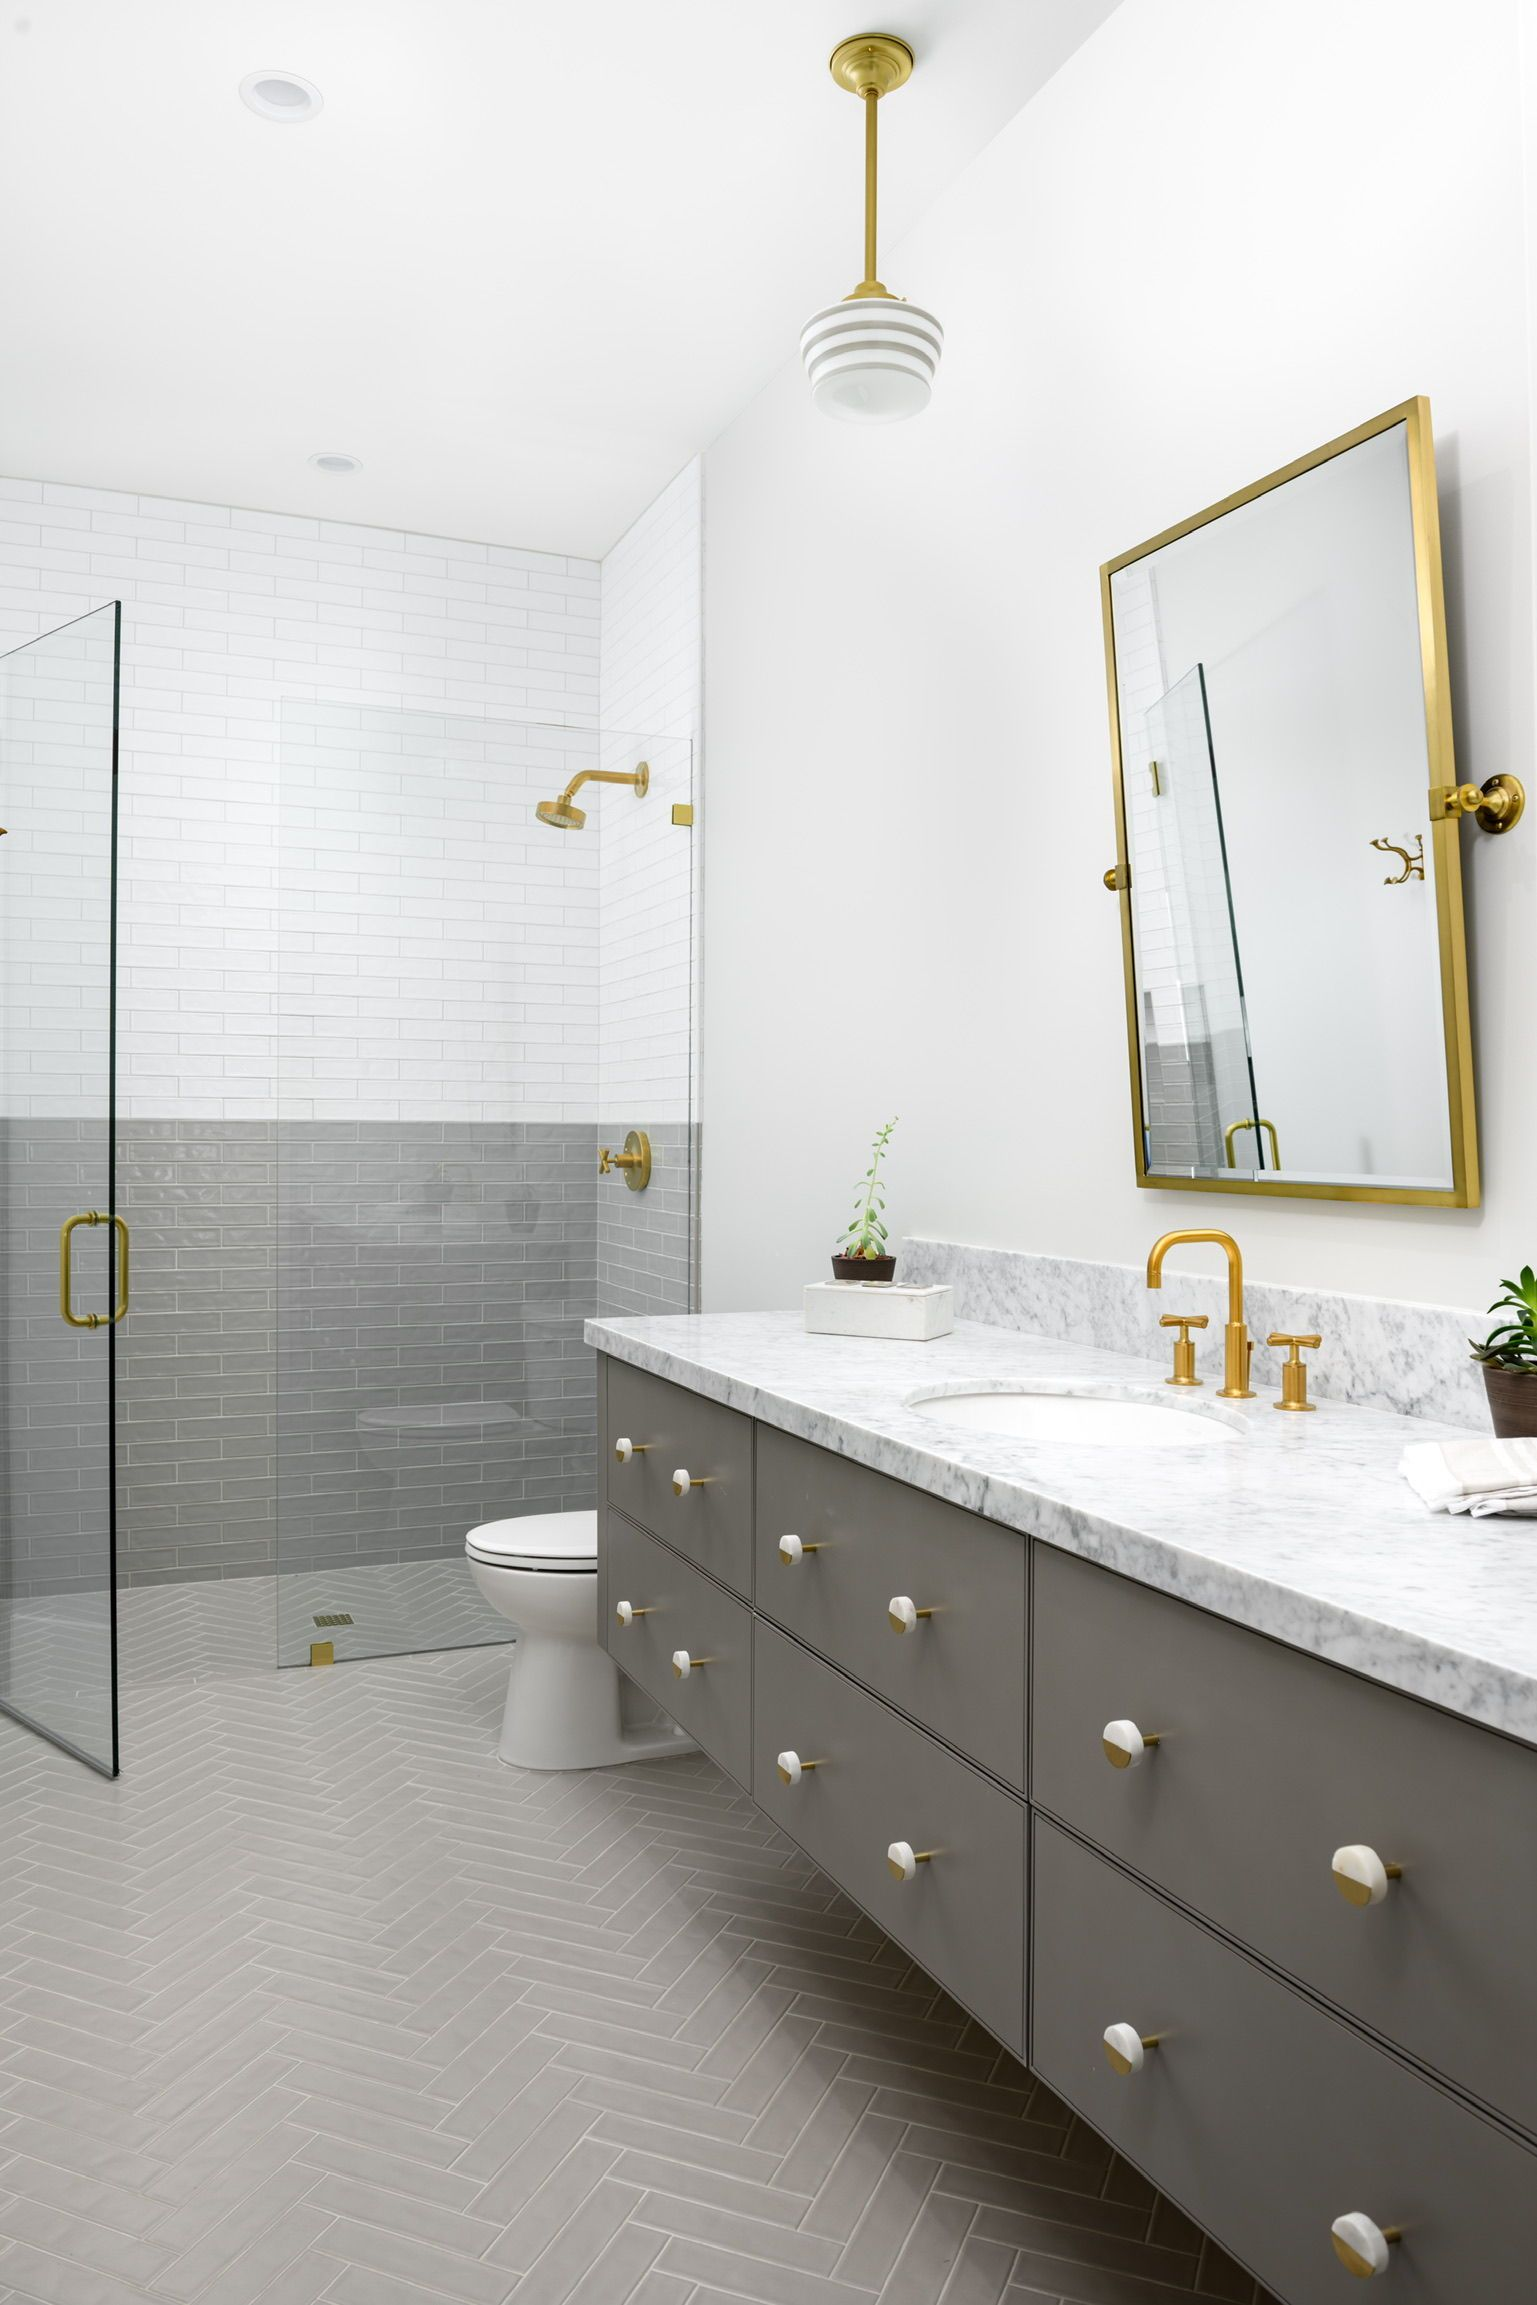 Grey And White Bathroom Ideas Modern Hard To Ignore This Stunning Bathroom With It S Marble Cou Gray And White Bathroom White Bathroom Herringbone Tile Floors